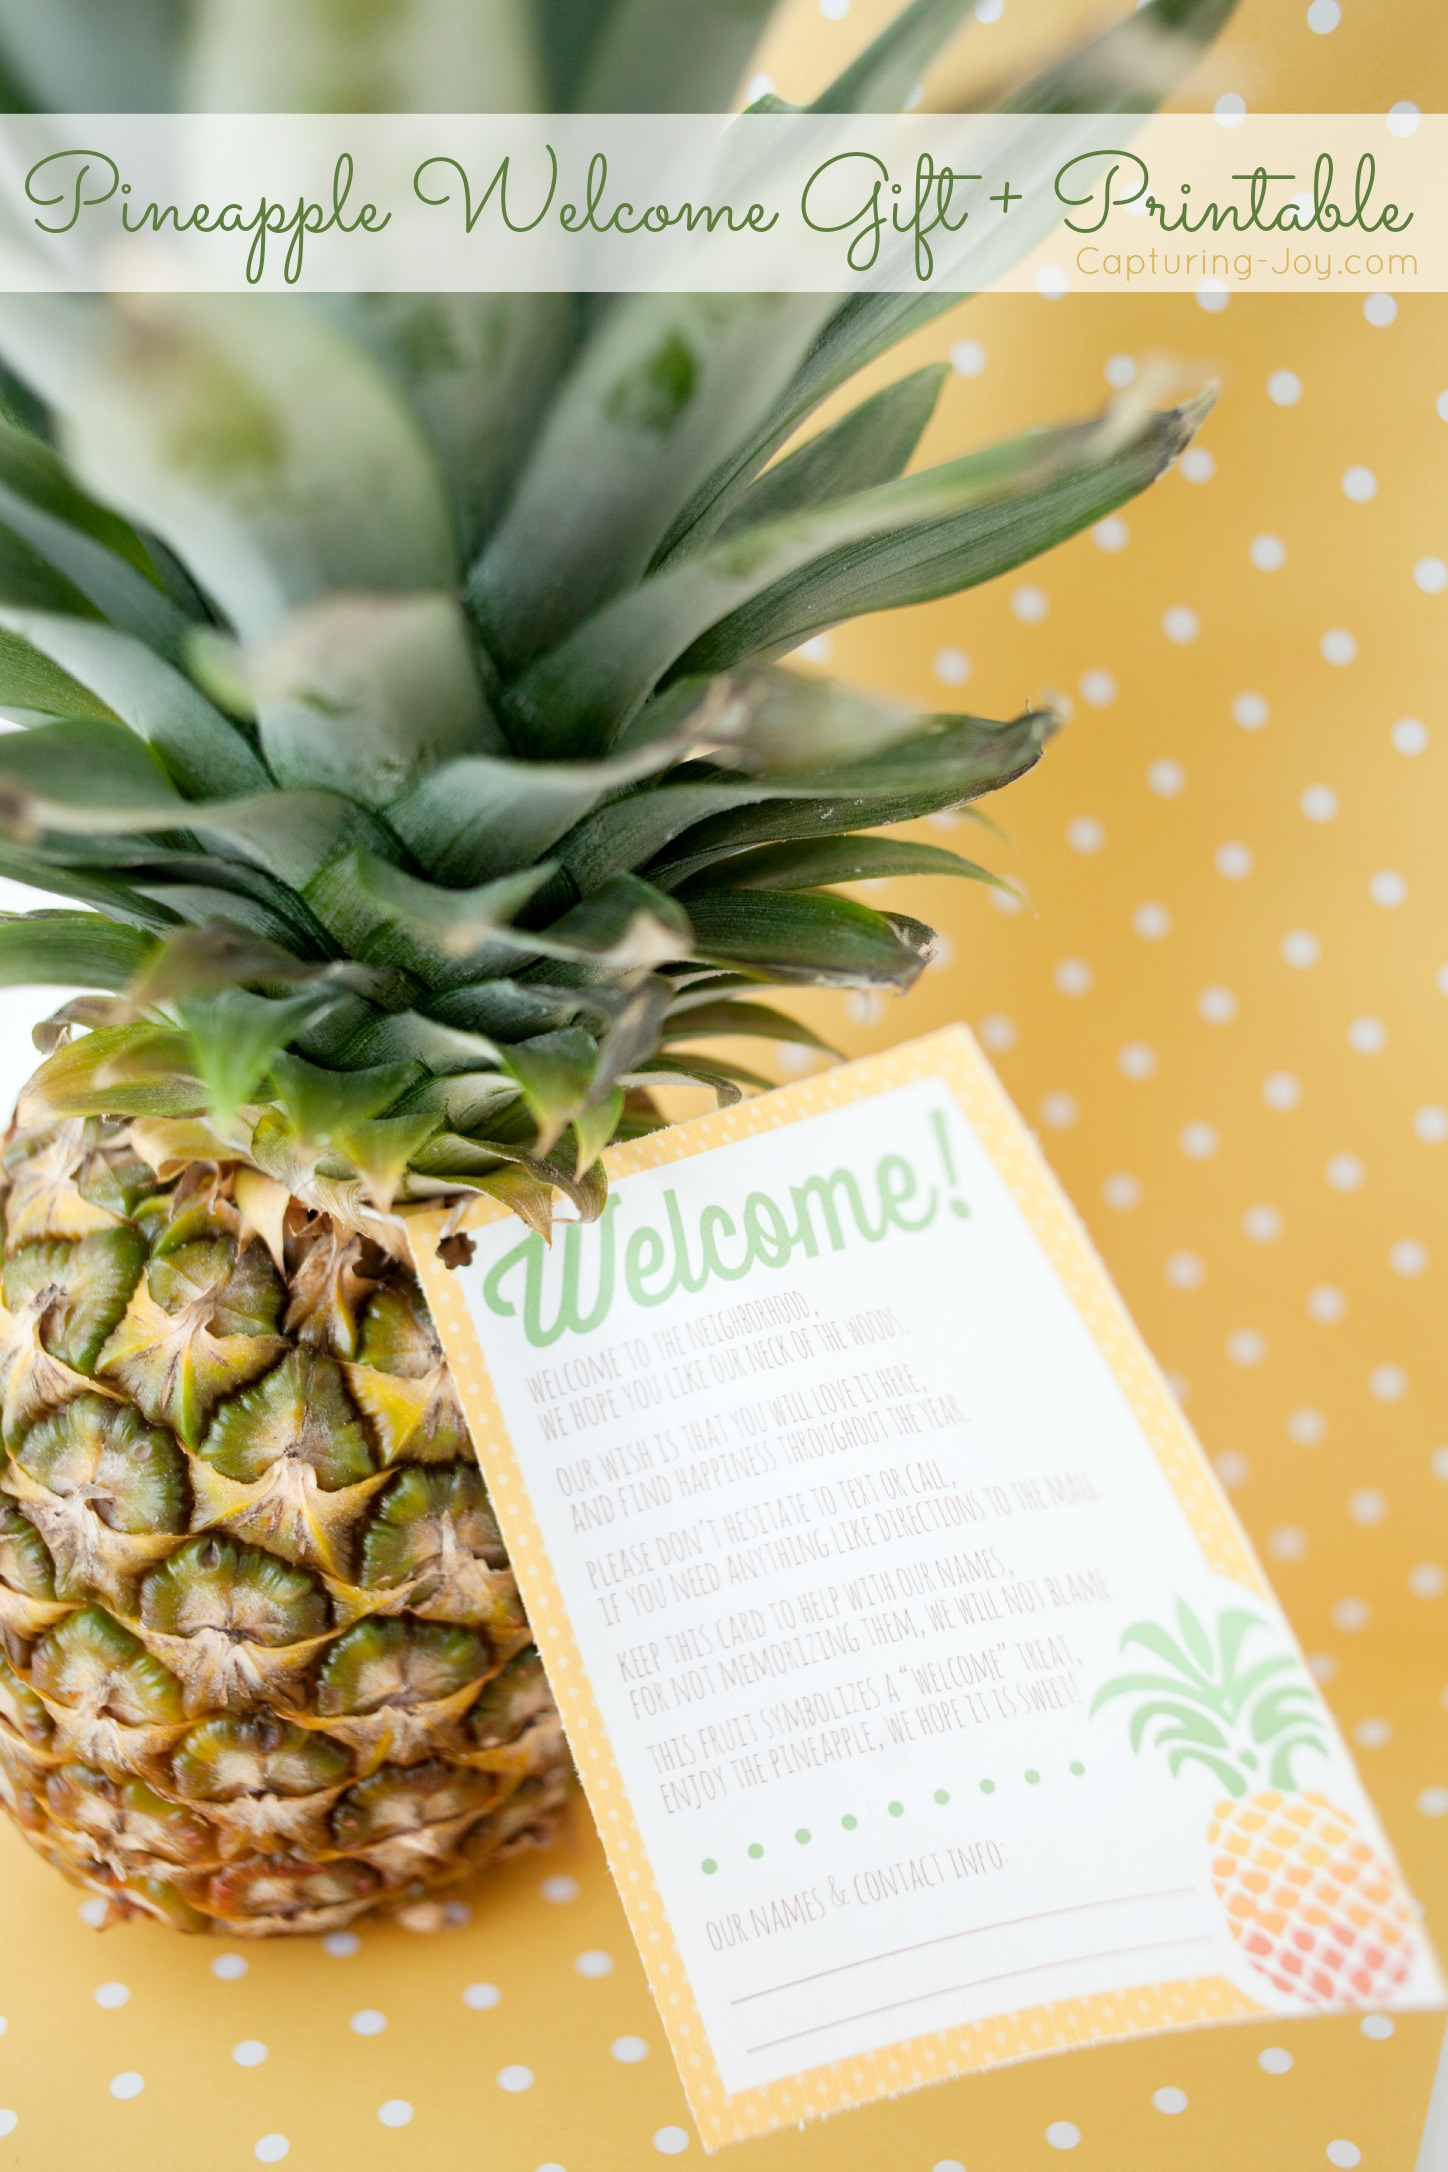 photo about Welcome to the Neighborhood Printable titled Welcome in direction of the Community Pineapple Present + Printable